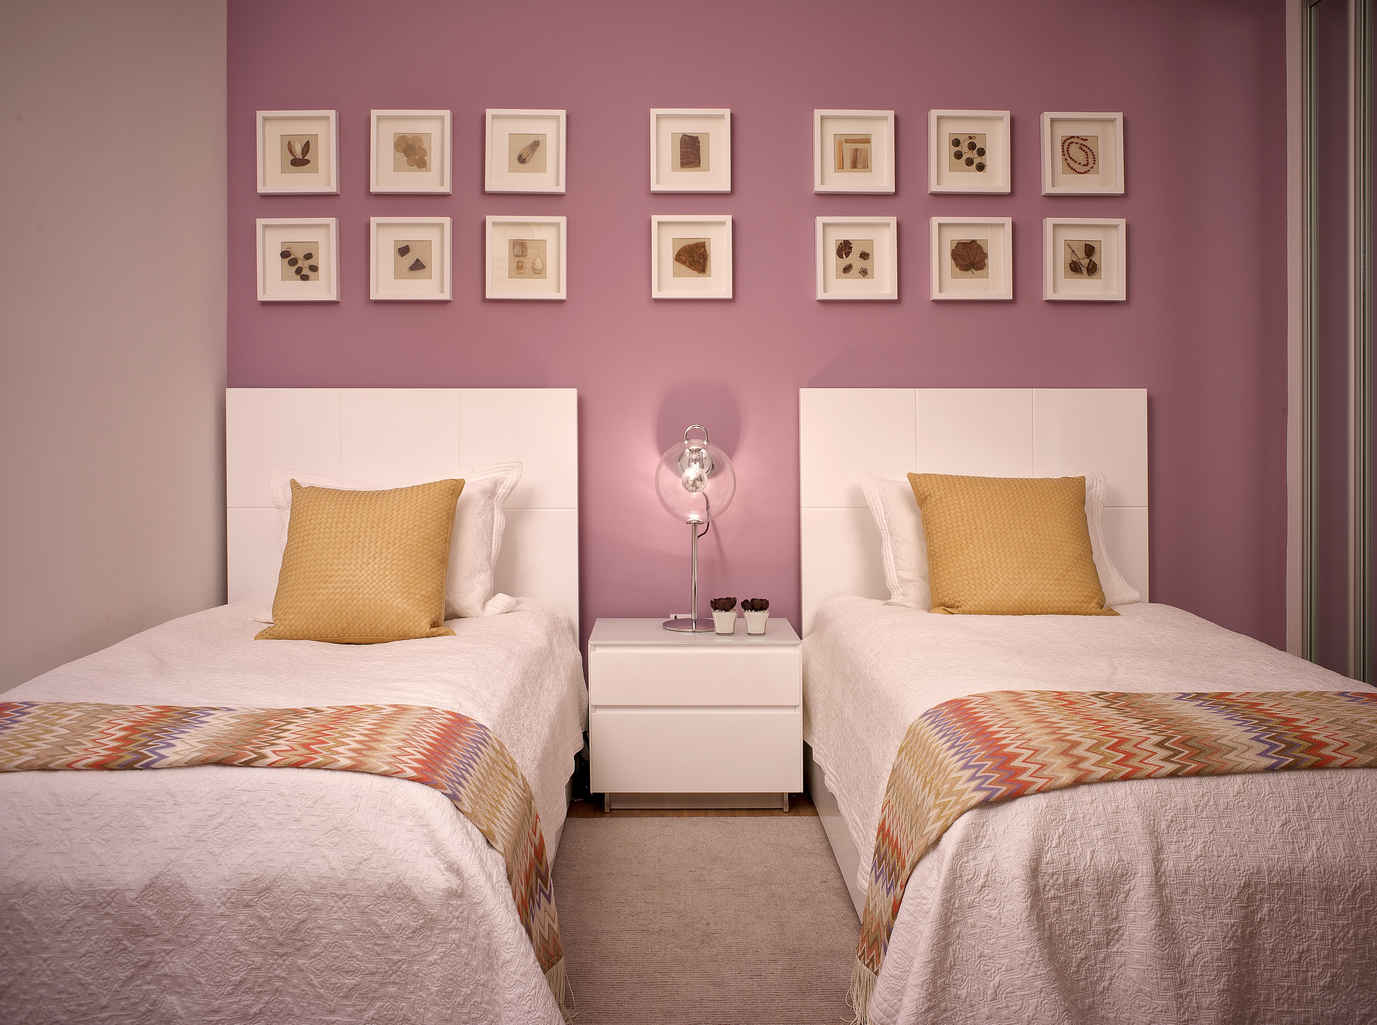 Interior Design Miami: How Much Does an Interior Designer Cost? - Sample of a kids bedroom